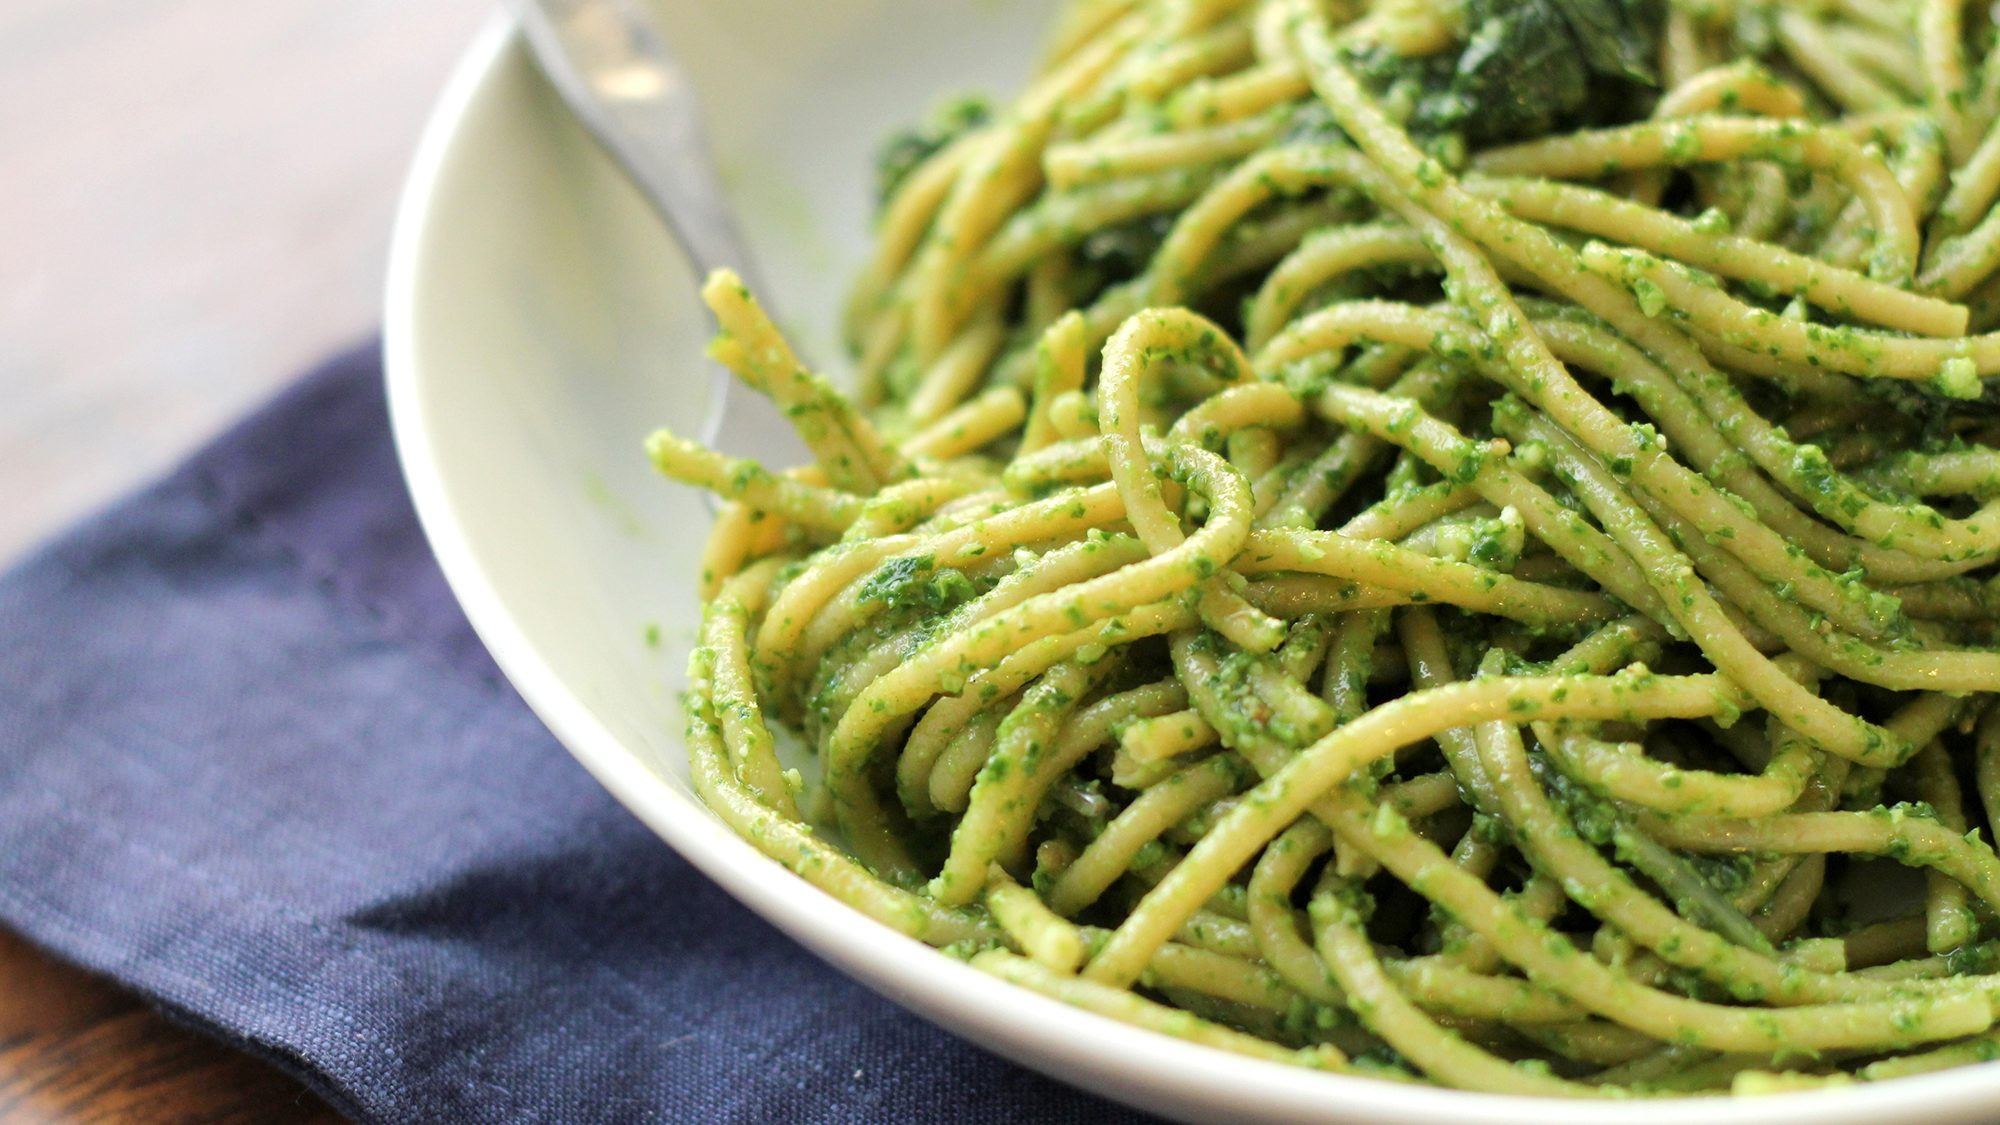 arugula-caraway-pesto-pasta-eats-well-with-others.jpg